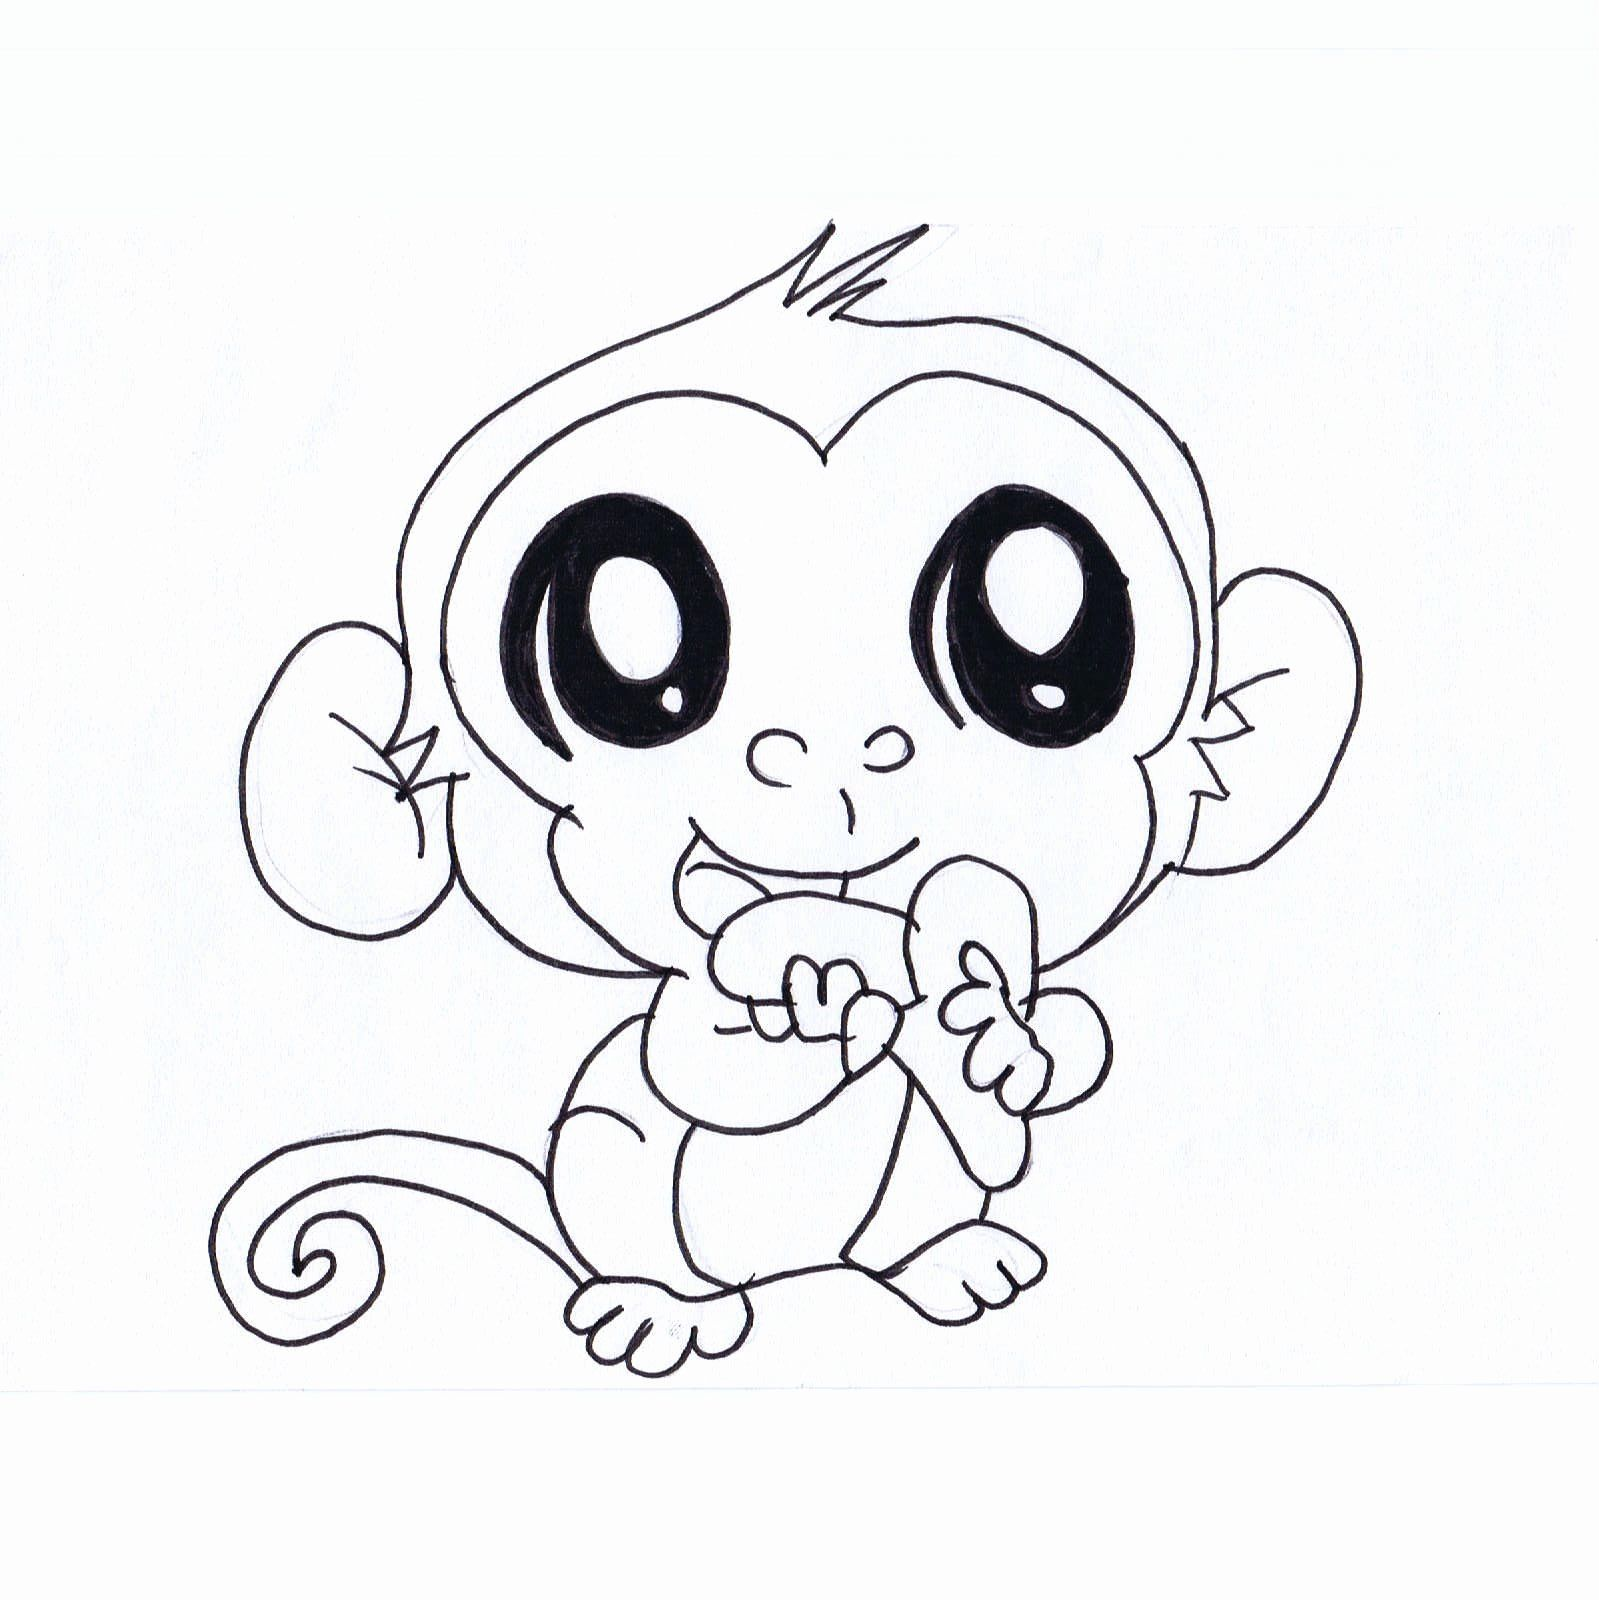 Cute Cartoon Animal Coloring Pages Awesome Cute Cartoon Animals Drawing At Getdrawings Cute Animal Drawings Cute Cartoon Drawings Cute Cartoon Animals